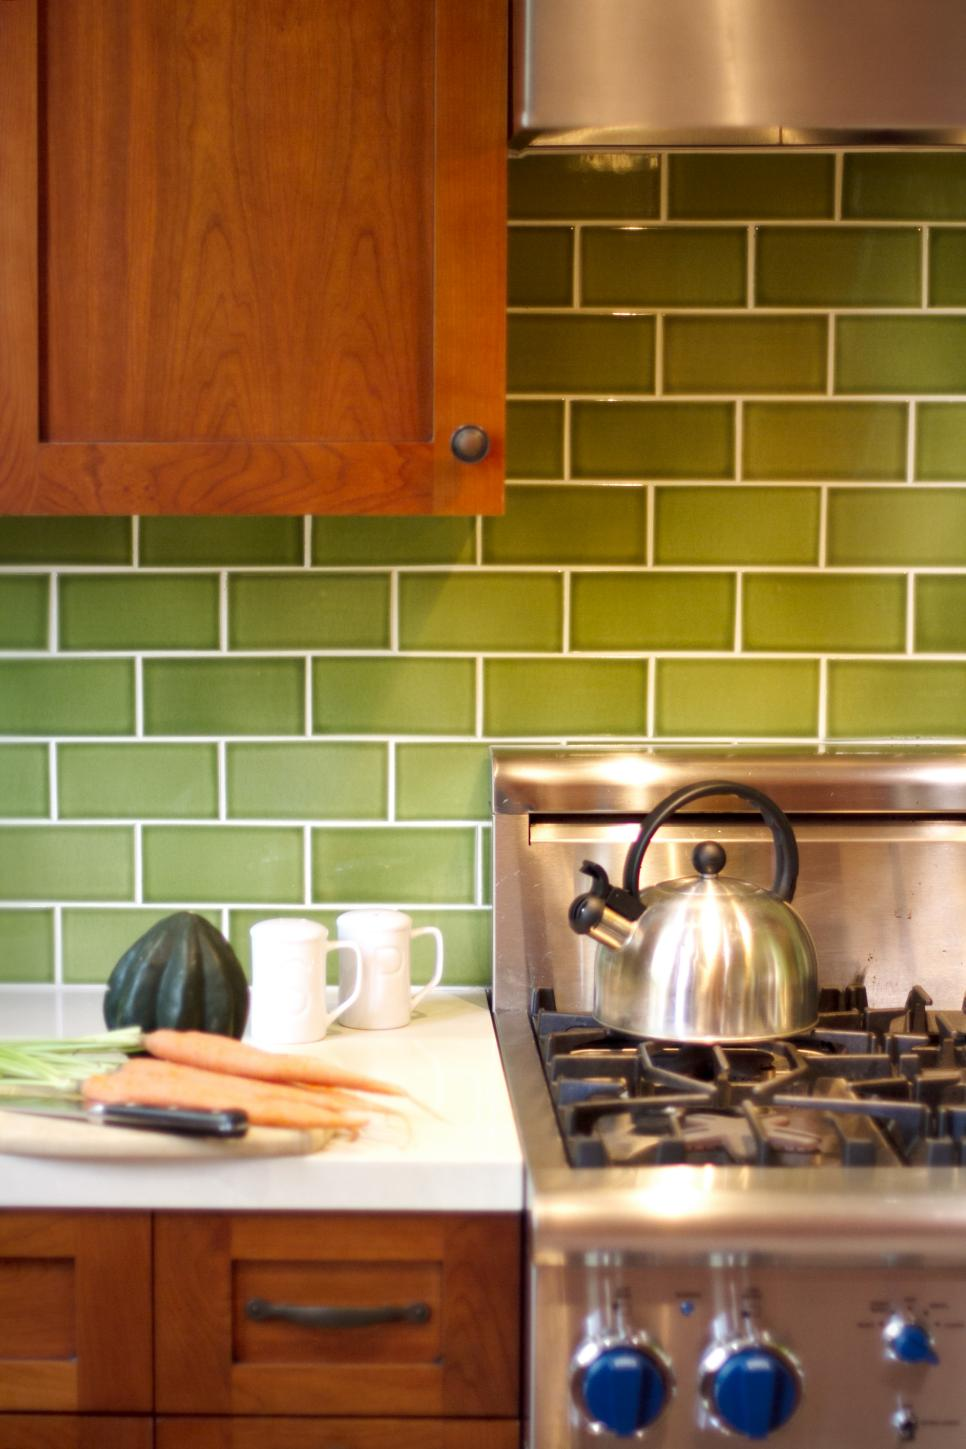 Kitchen Backsplash Subway Tile 11 creative subway tile backsplash ideas | hgtv